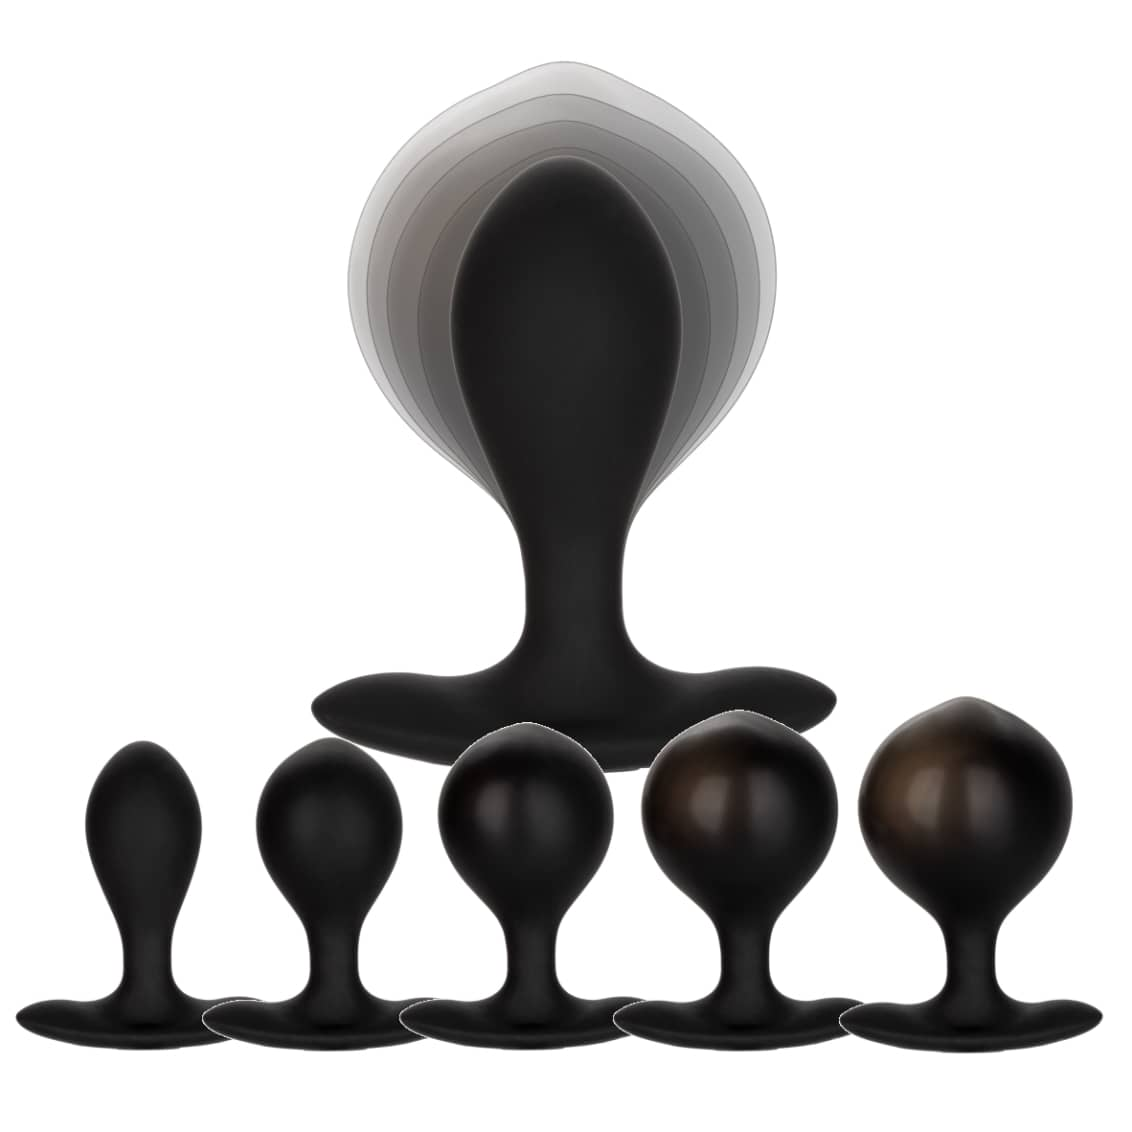 Weighted Silicone Inflatable Anal Plug by Calexotics